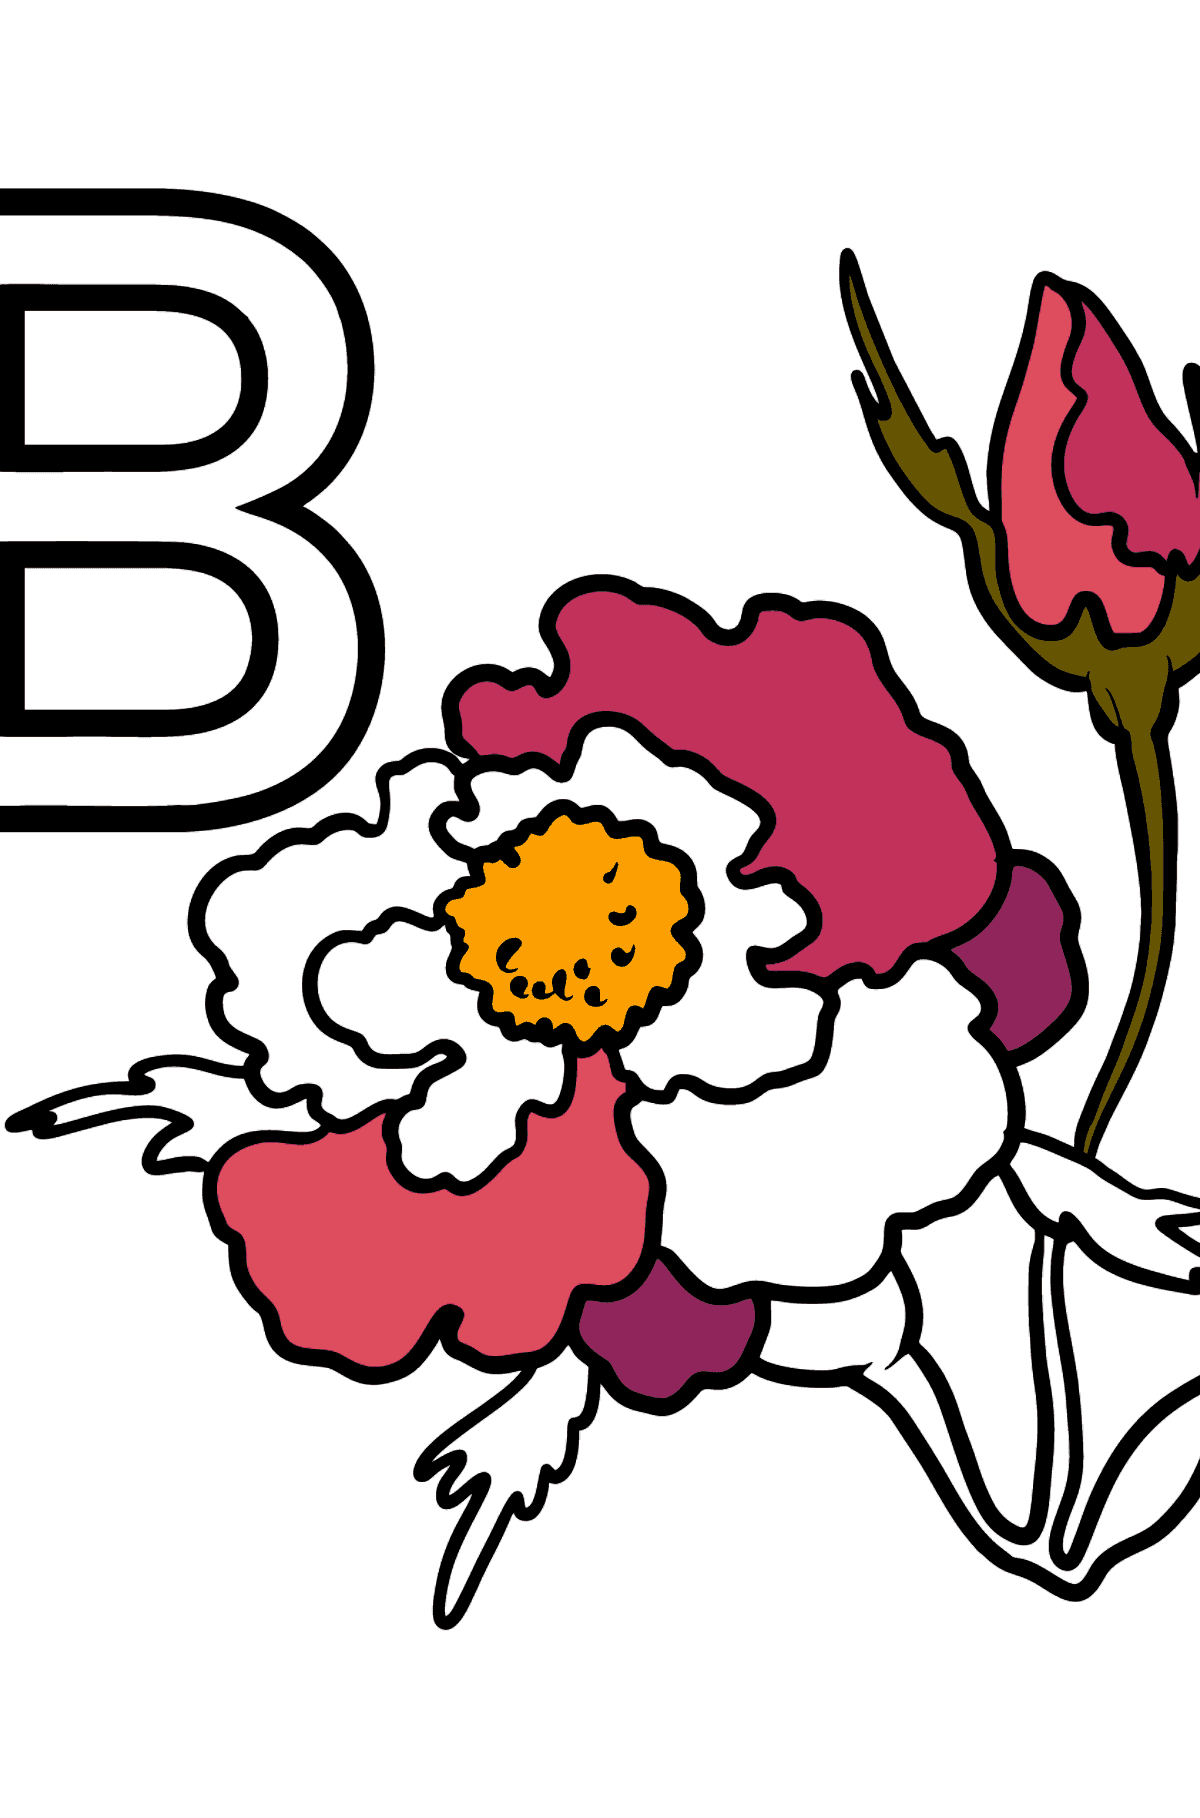 German Letter B coloring pages - BLUME - Coloring Pages for Kids